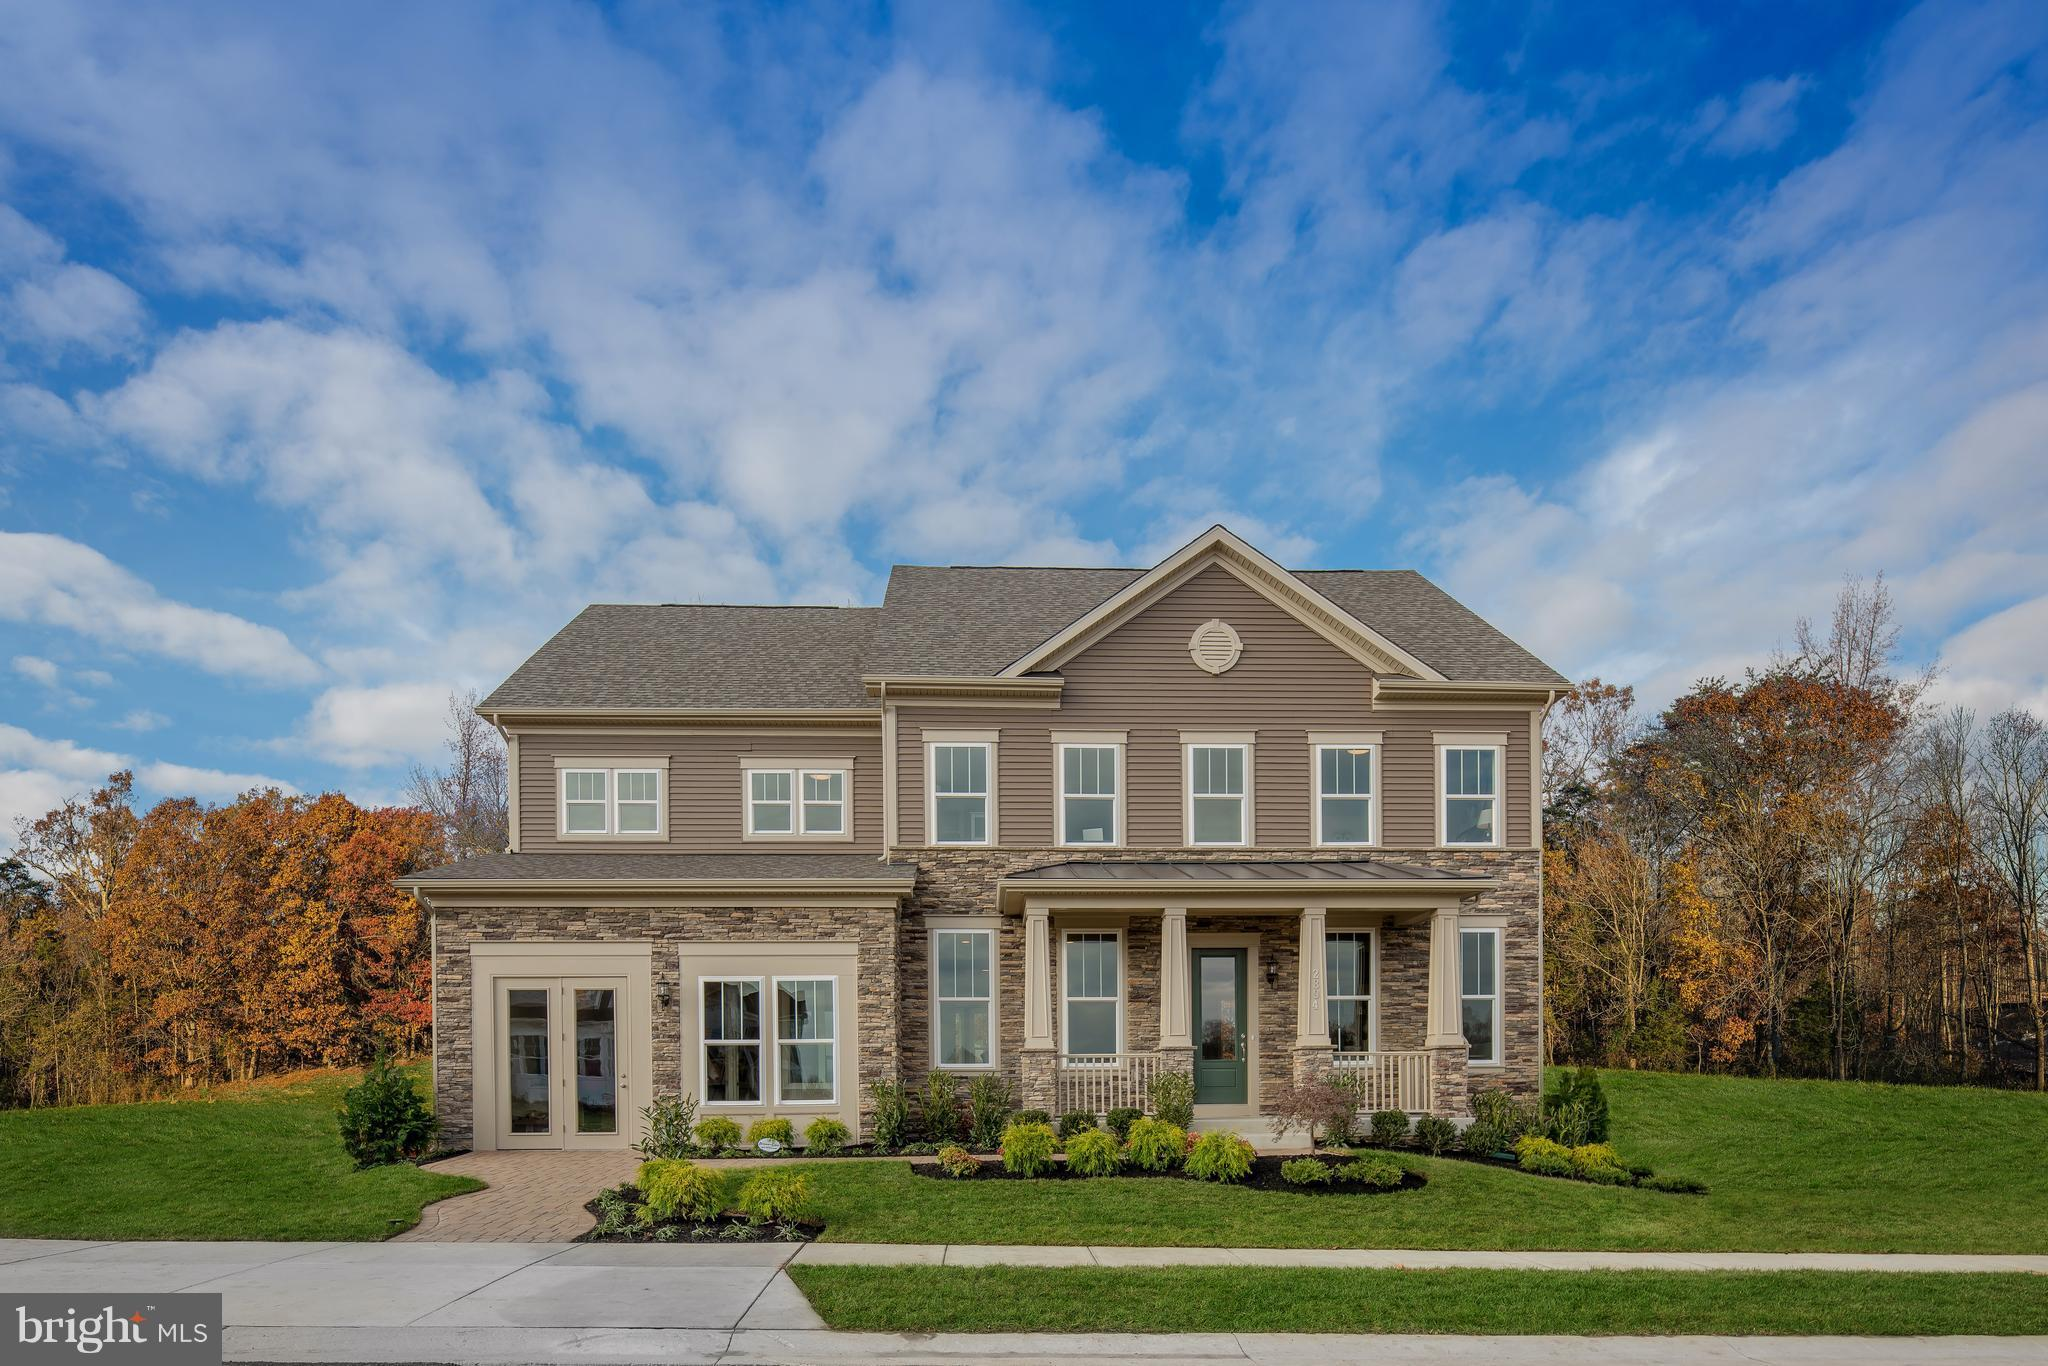 2894 BROAD WING DRIVE, ODENTON, MD 21113